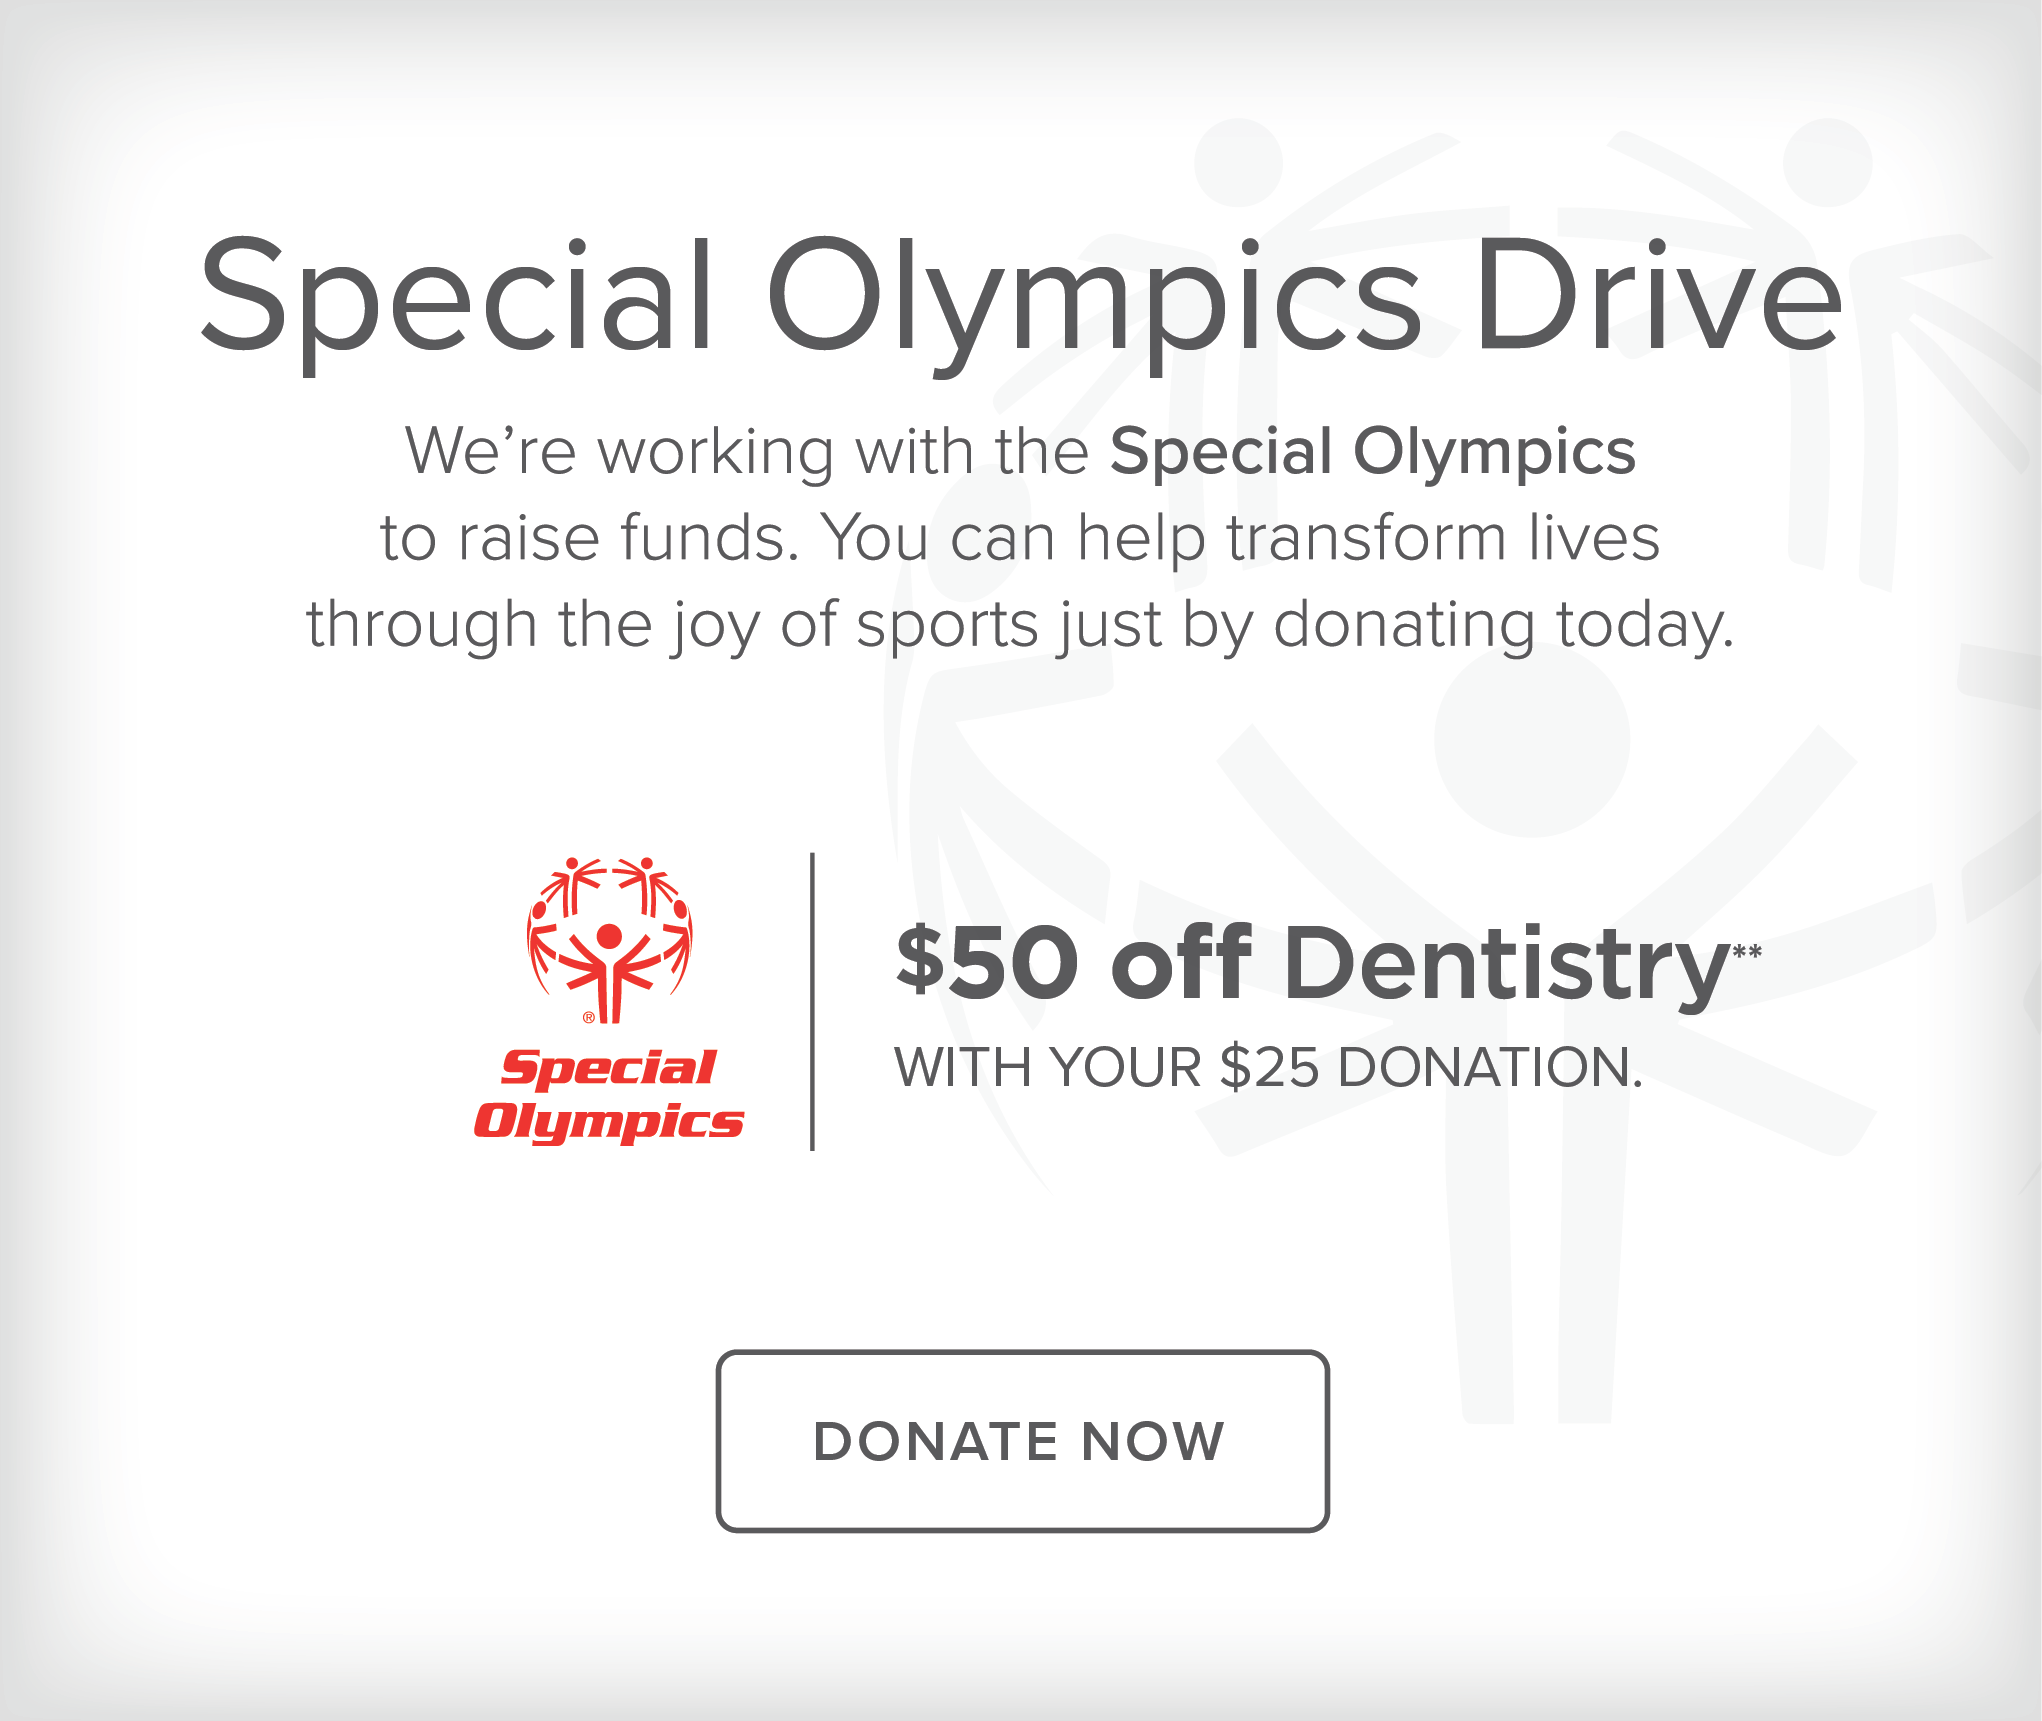 Special Olympics Drive - Cherry Creek Modern Dentistry